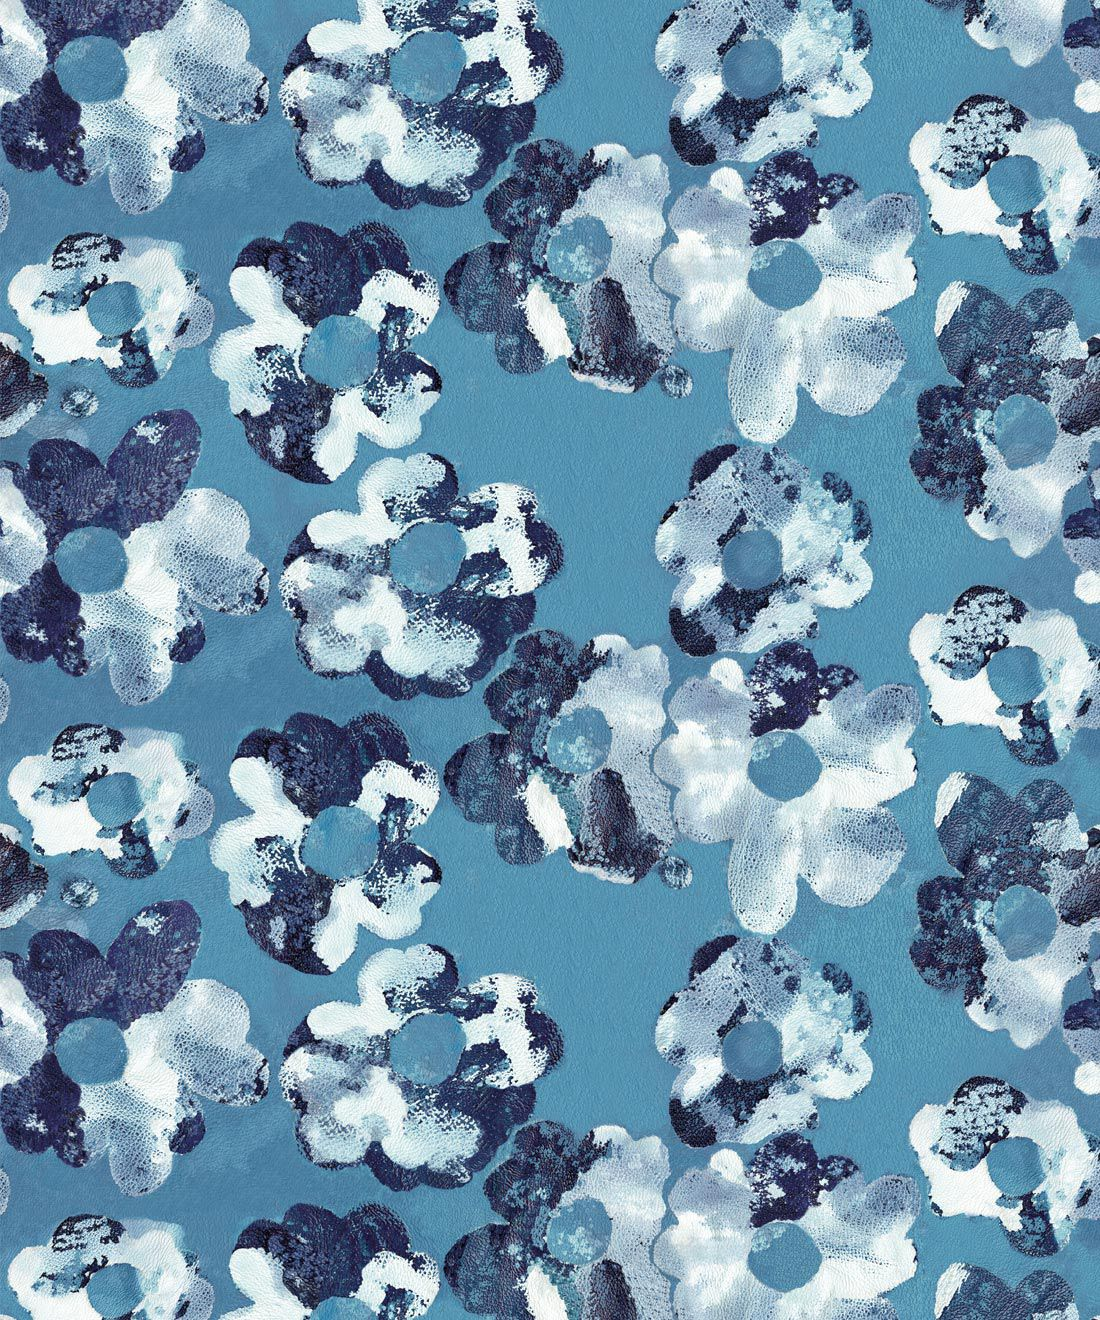 Cherry Blossom Wallpaper Indigo Blue • Shibori Floral • Swatch